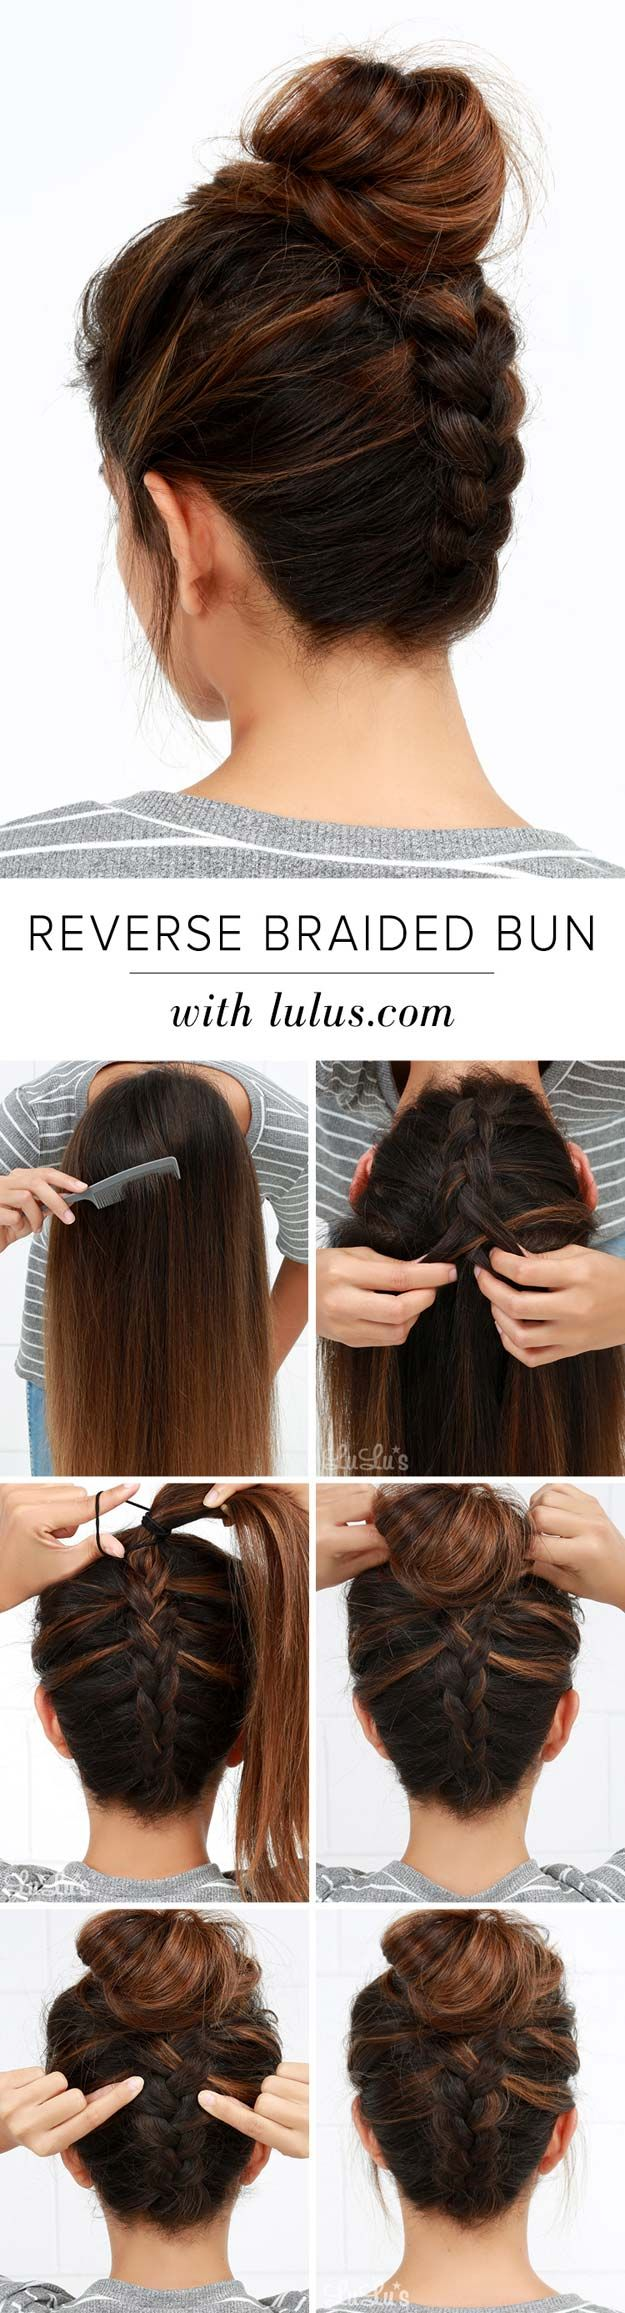 Peachy 1000 Ideas About Easy Casual Hairstyles On Pinterest Messy Short Hairstyles Gunalazisus